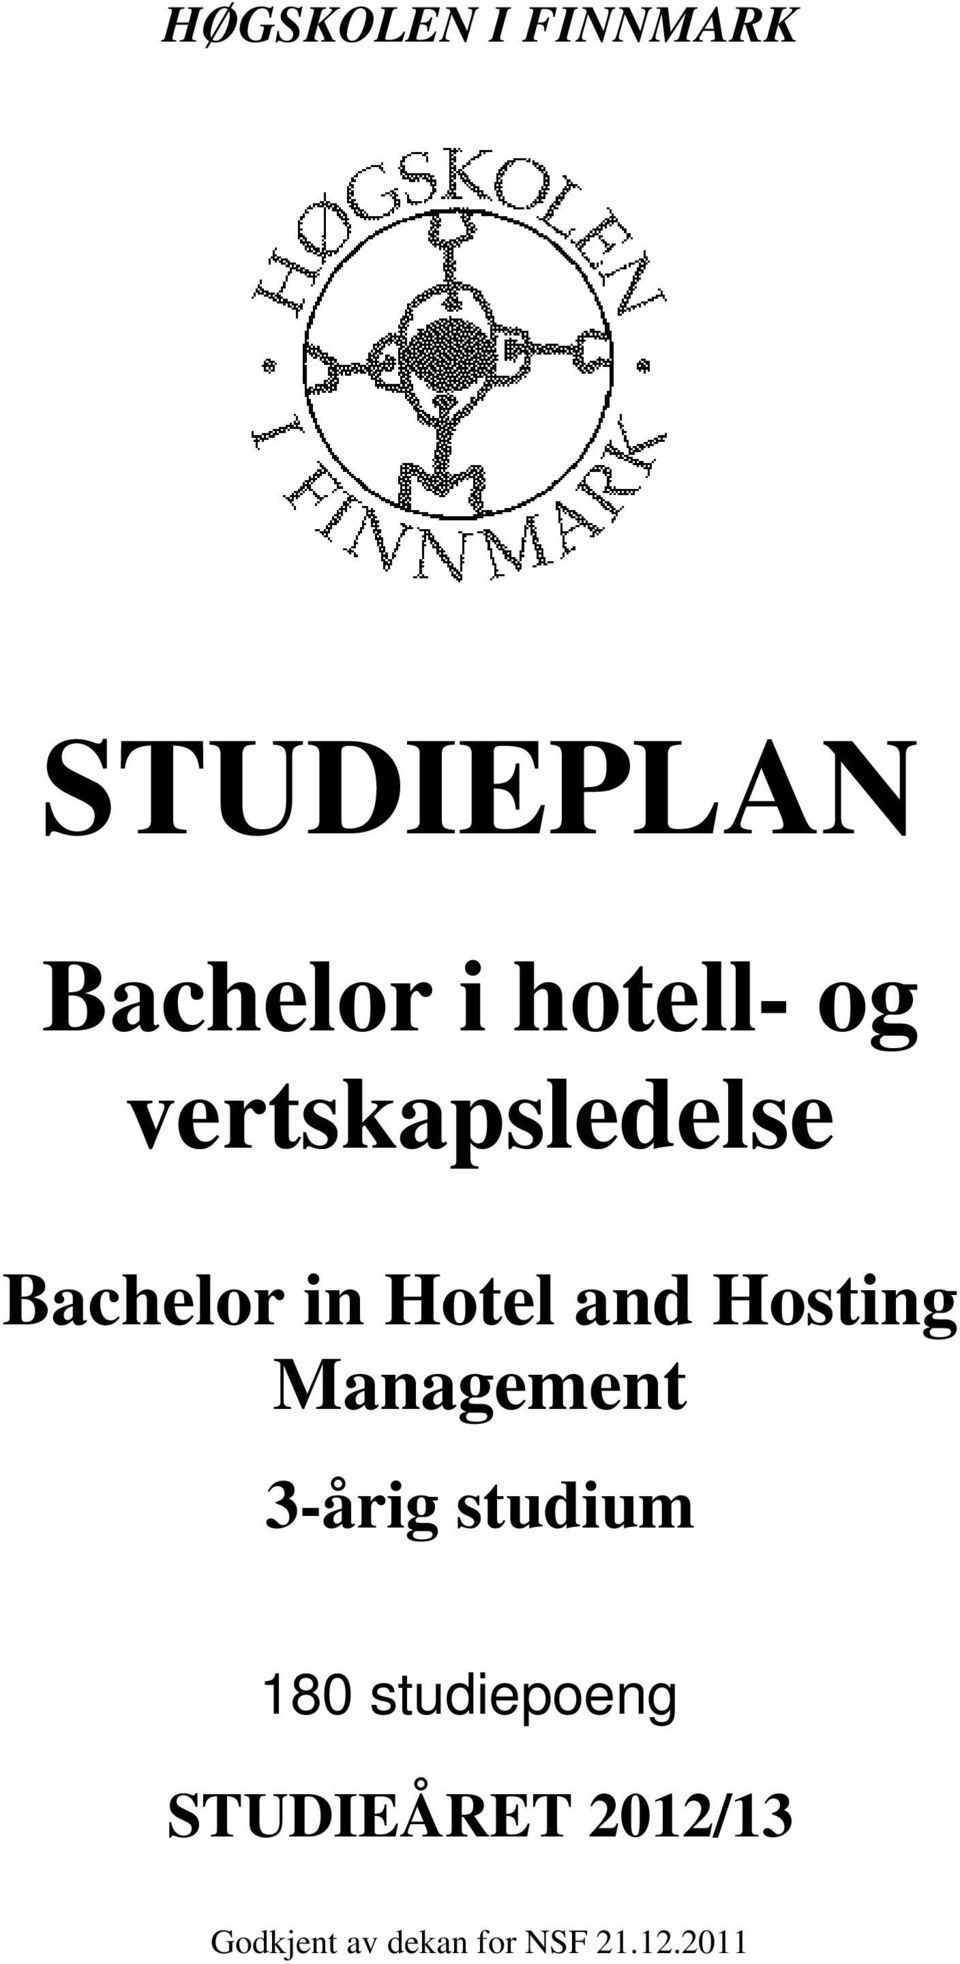 Hosting Management 3-årig studium 180 studiepoeng